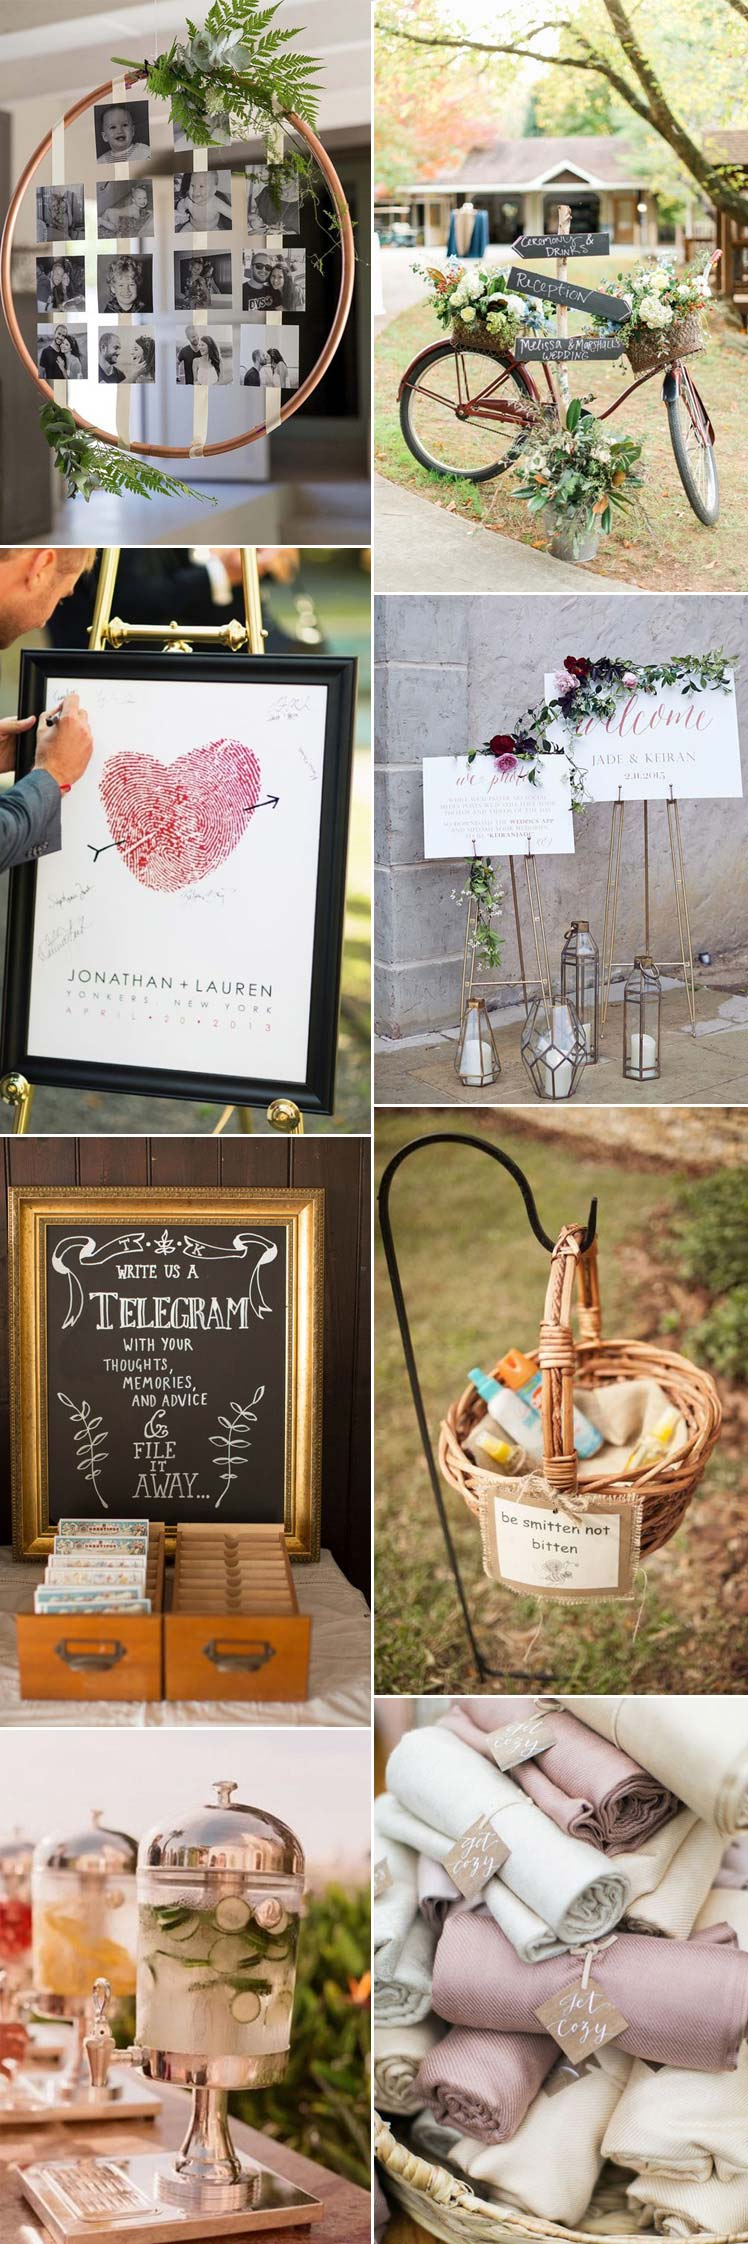 15 ideas your guests will appreciate